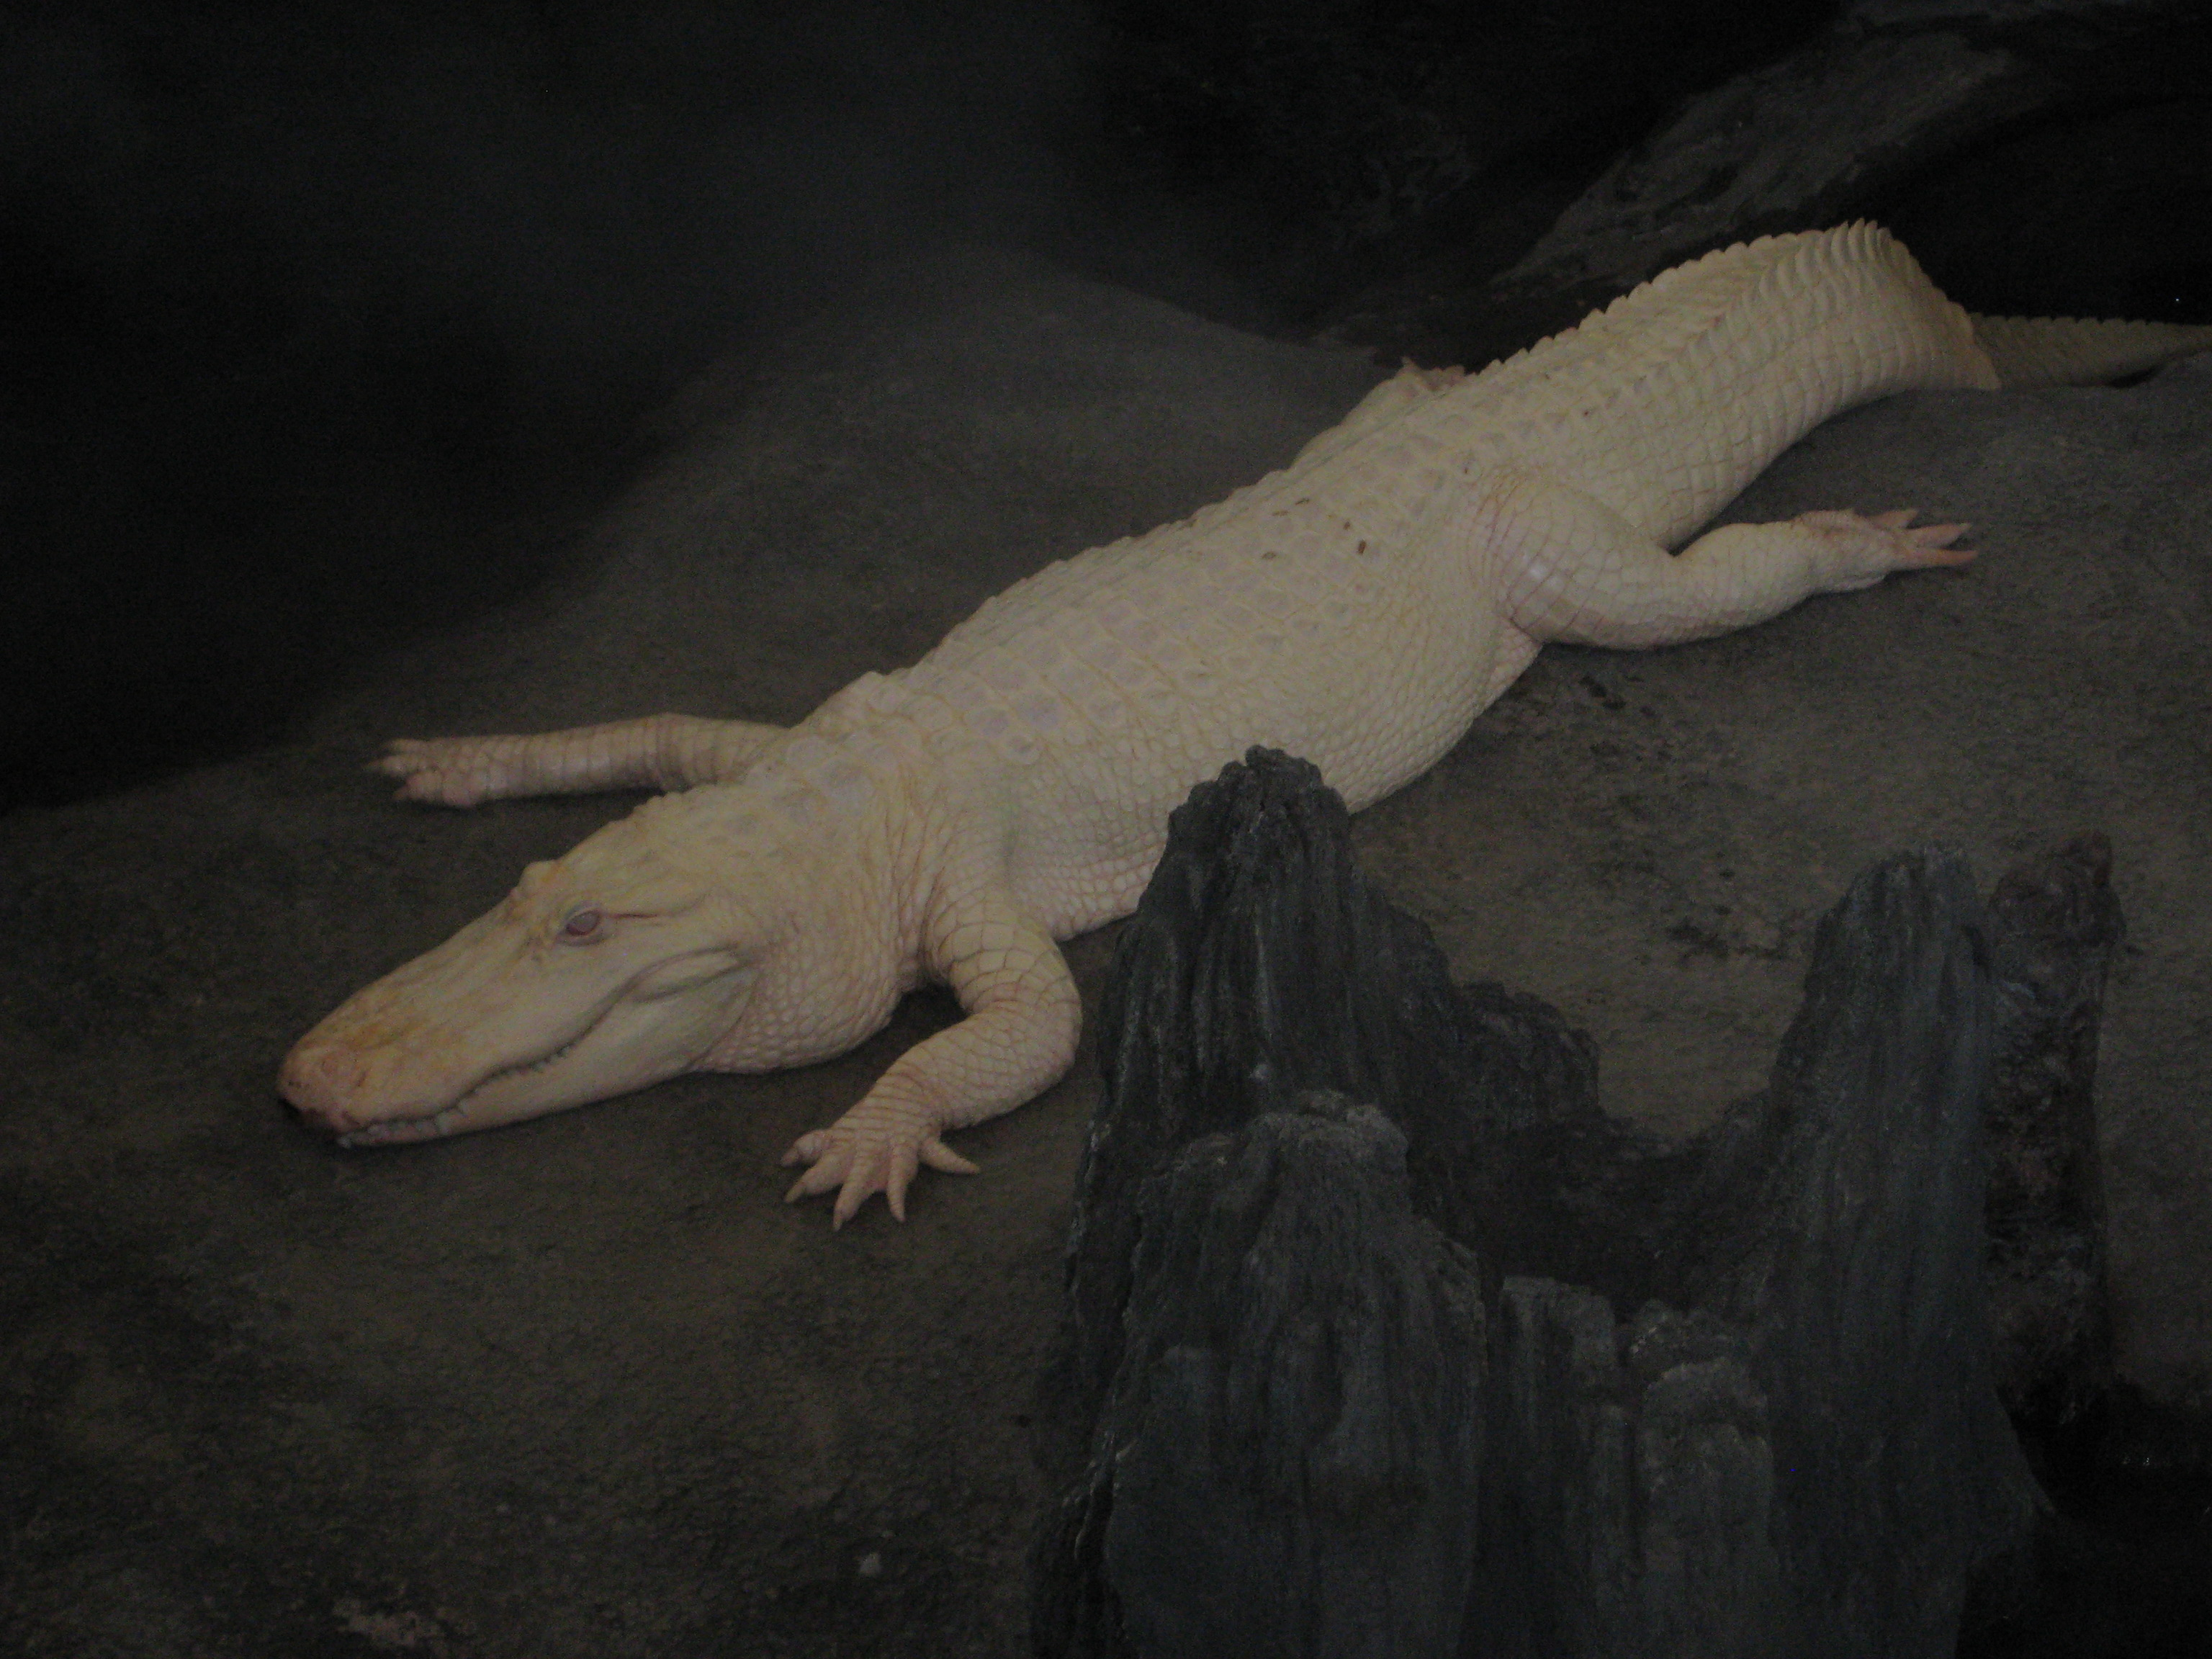 An albino alligator resides at the California Academy of Sciences.